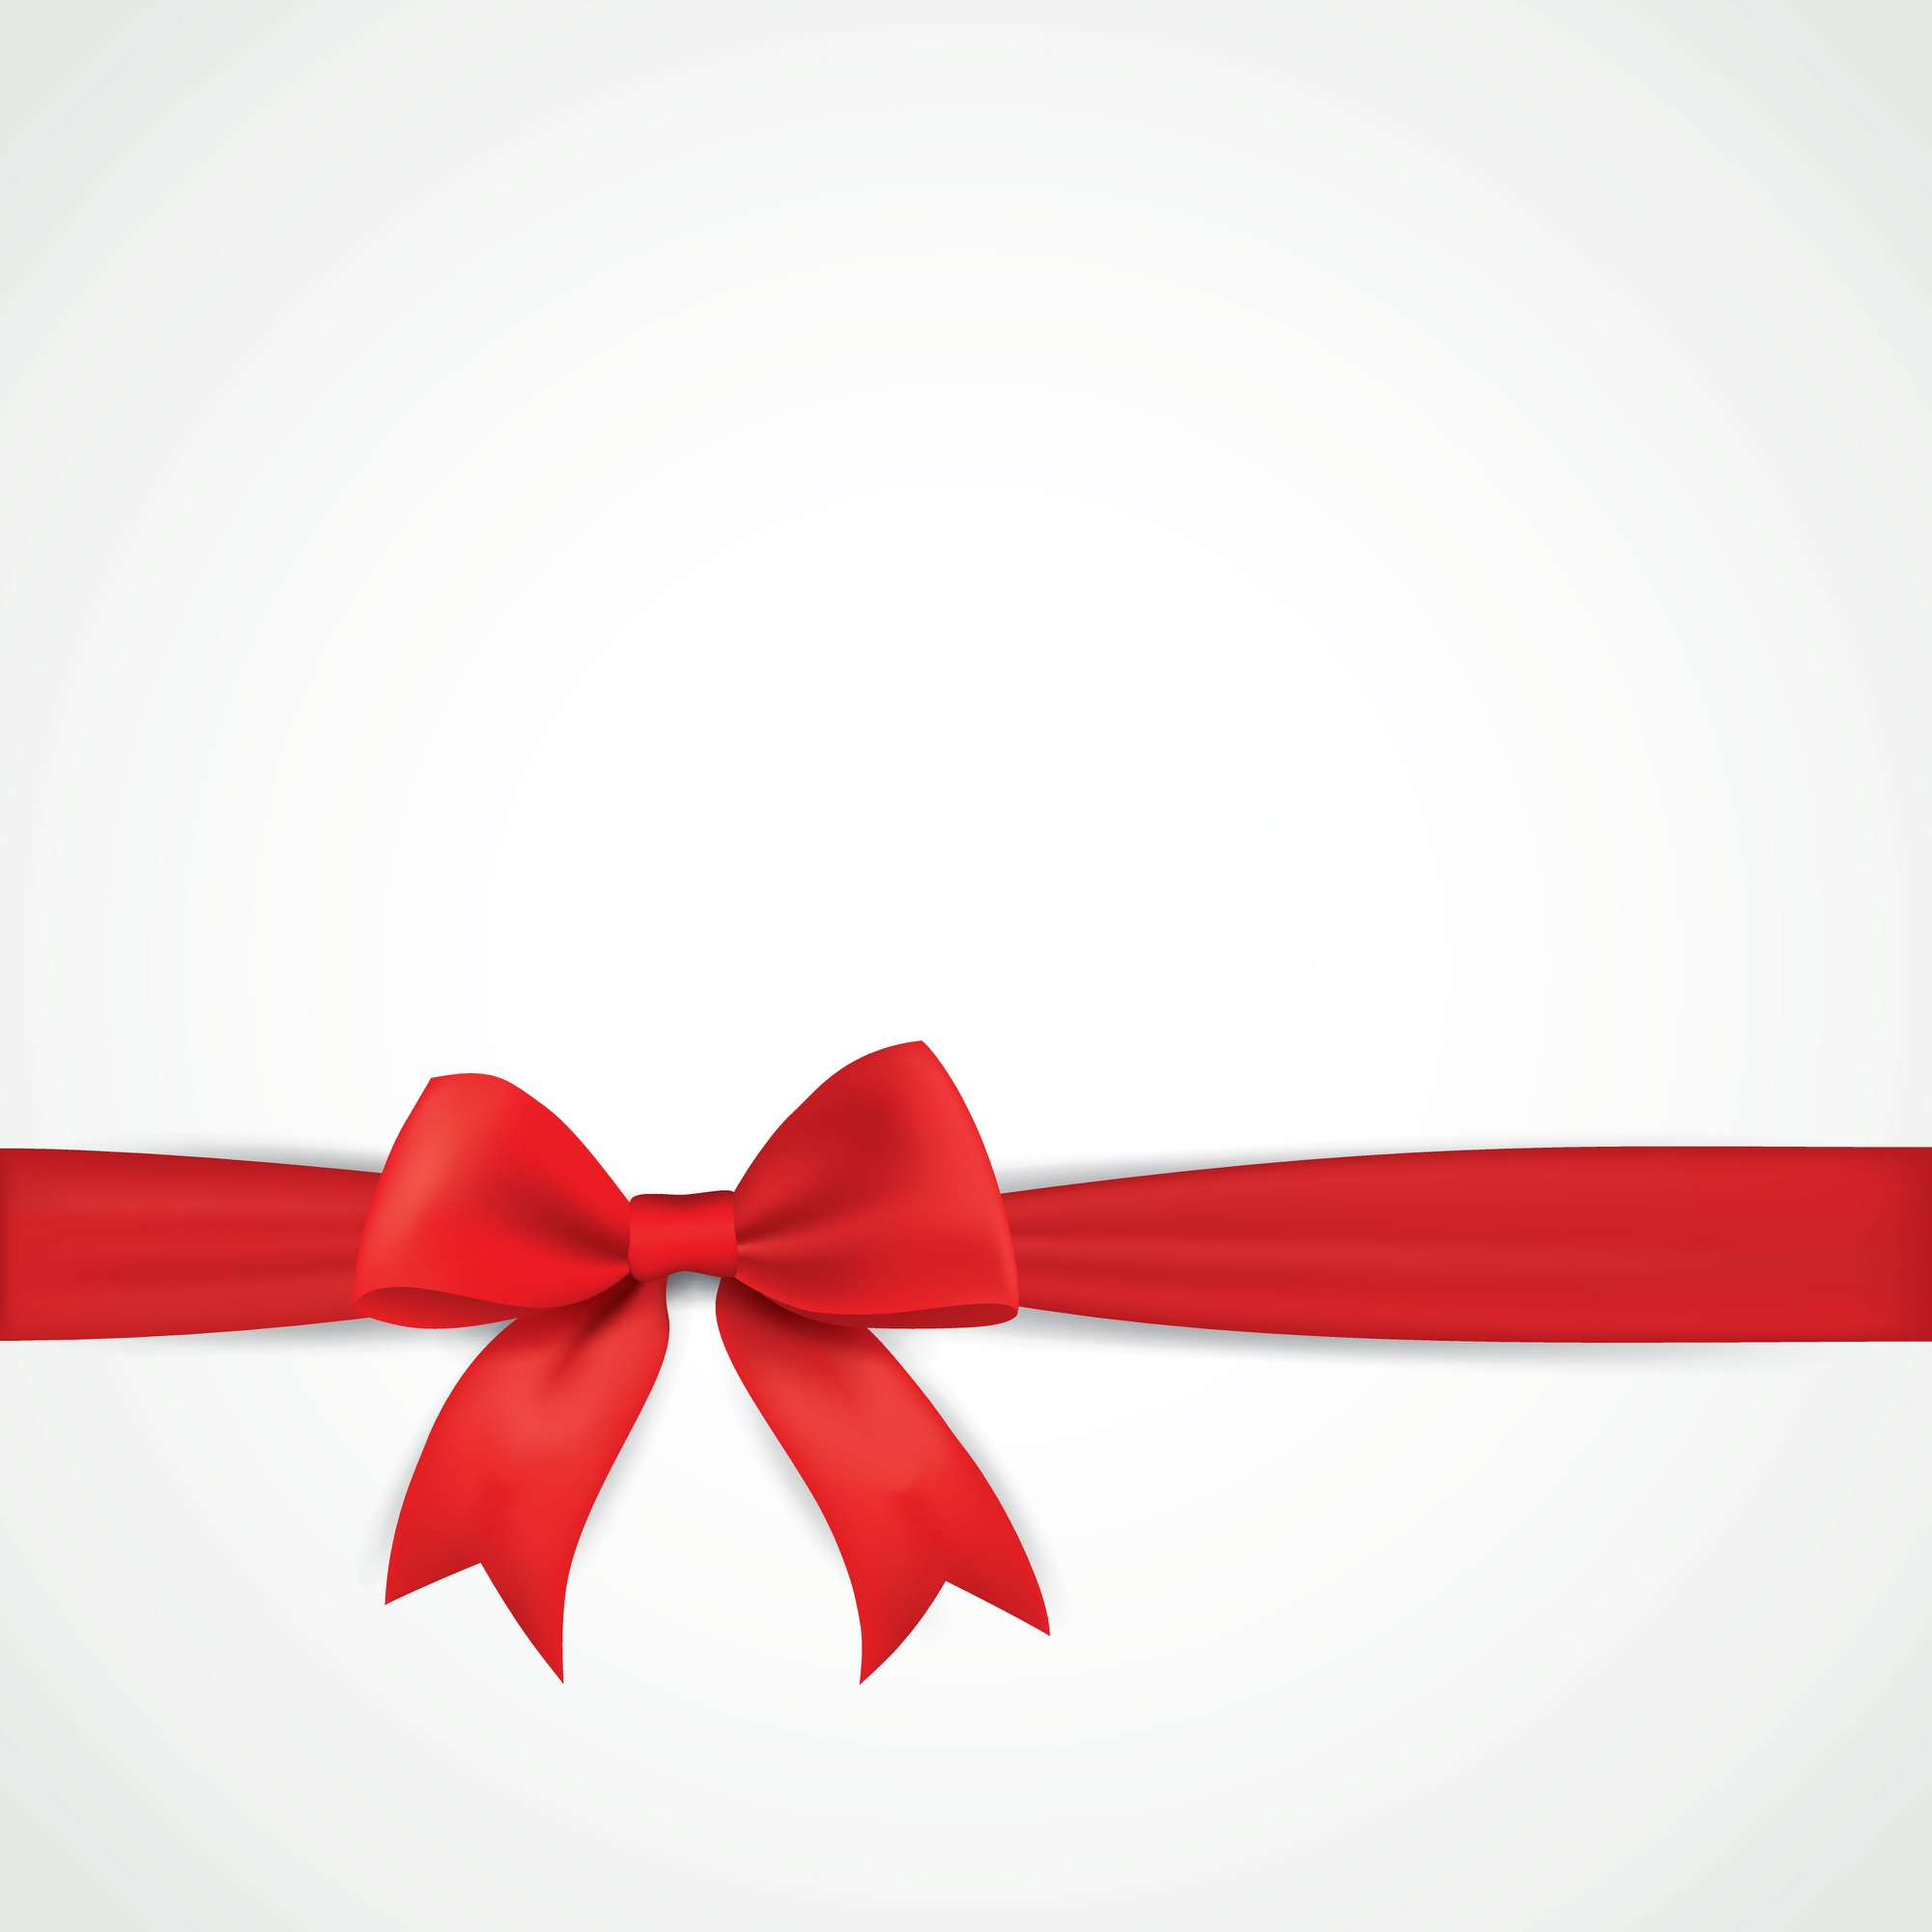 Background with realistic red bow and ribbon